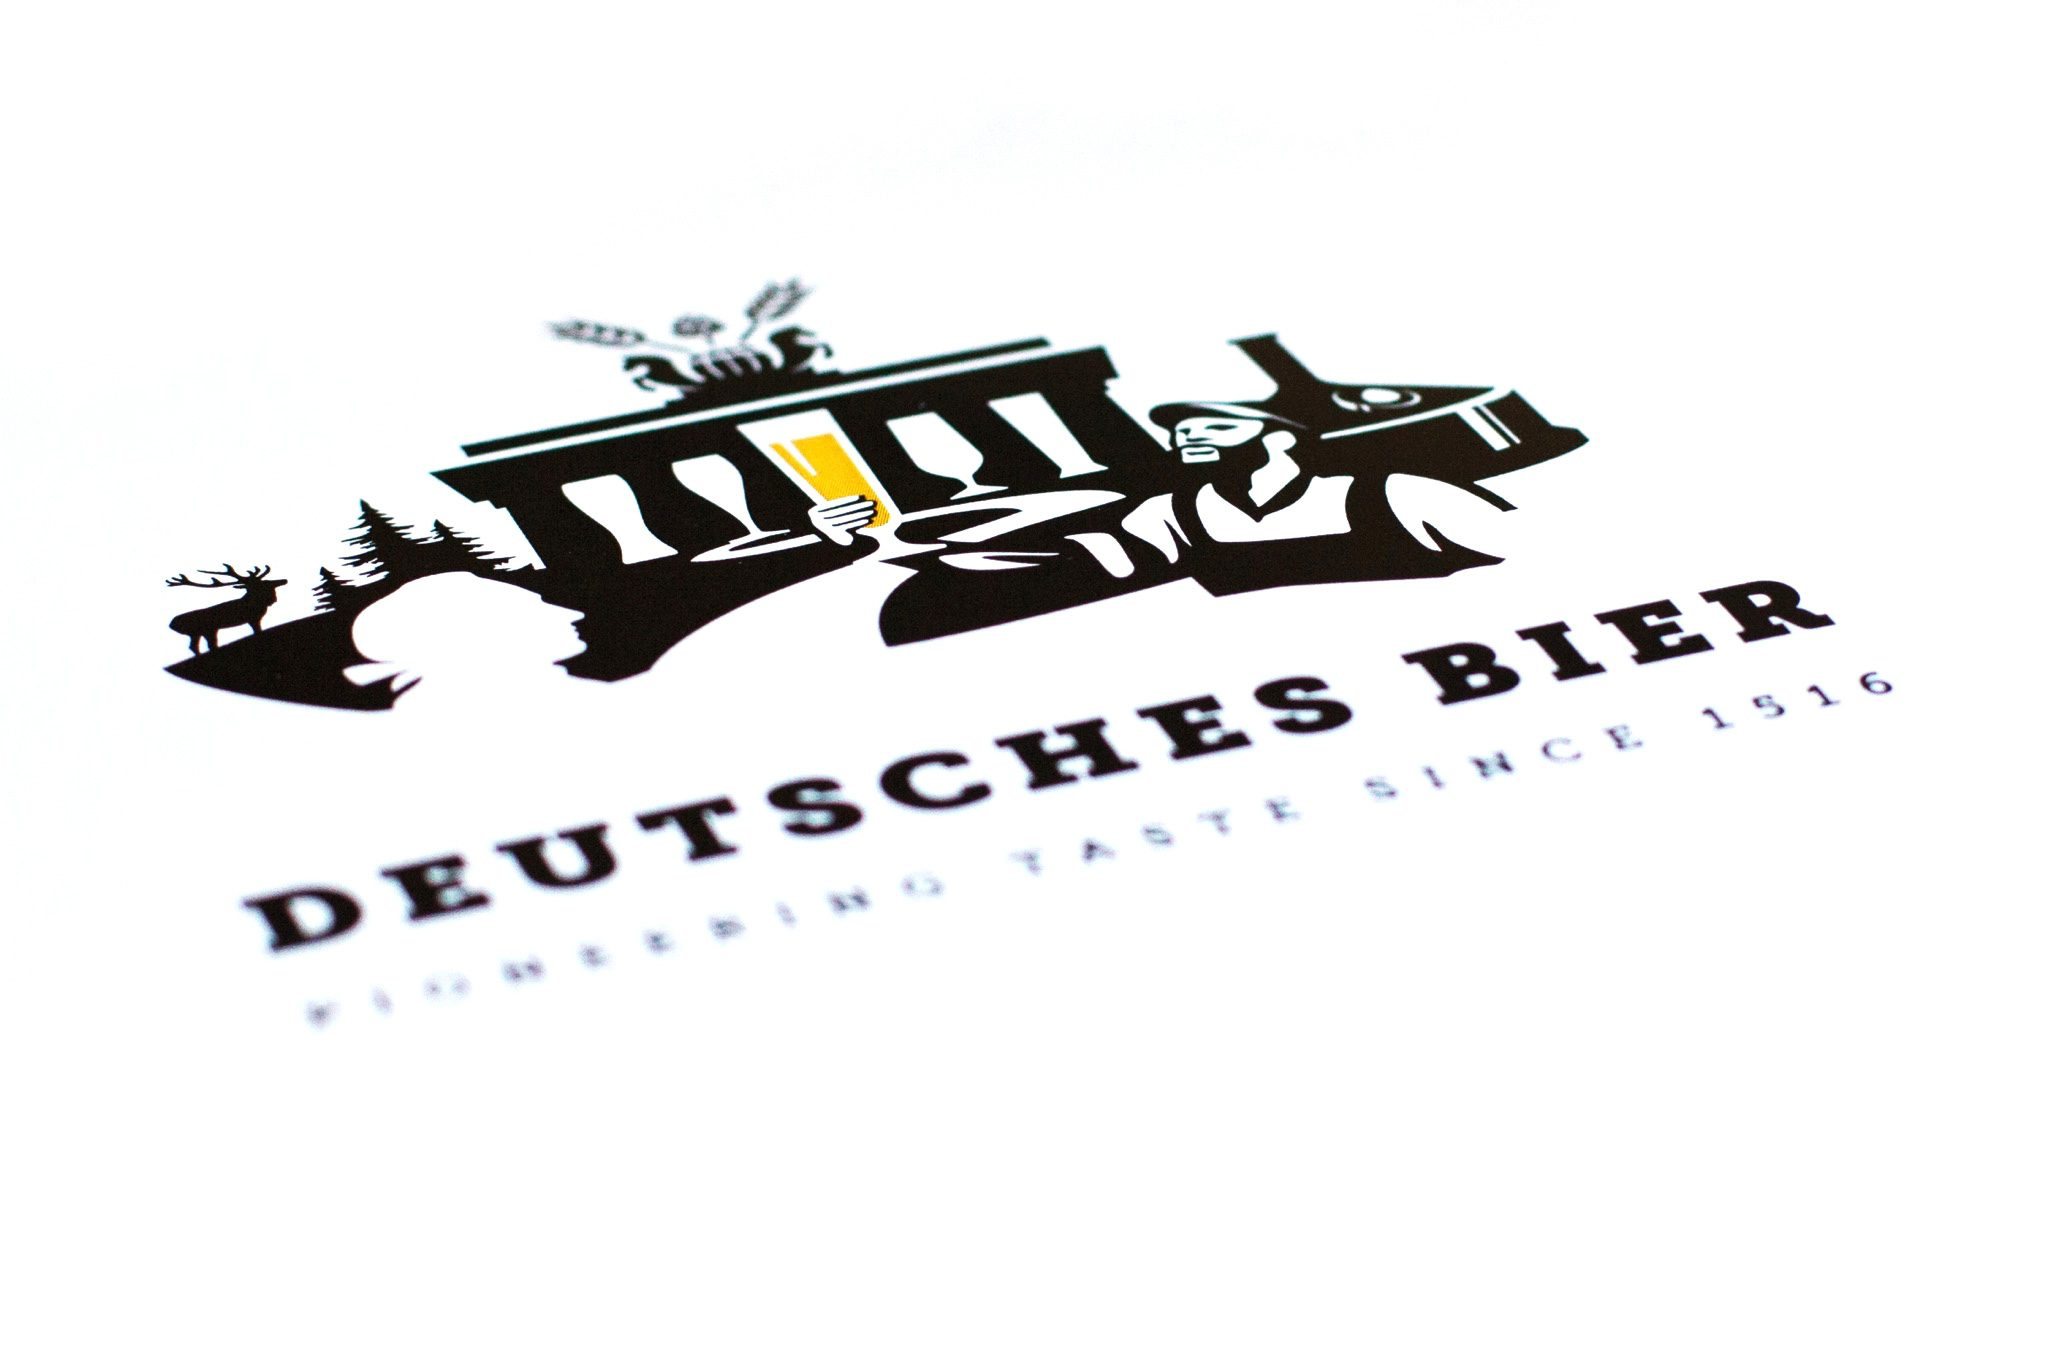 Deutsches Bier logo perspective